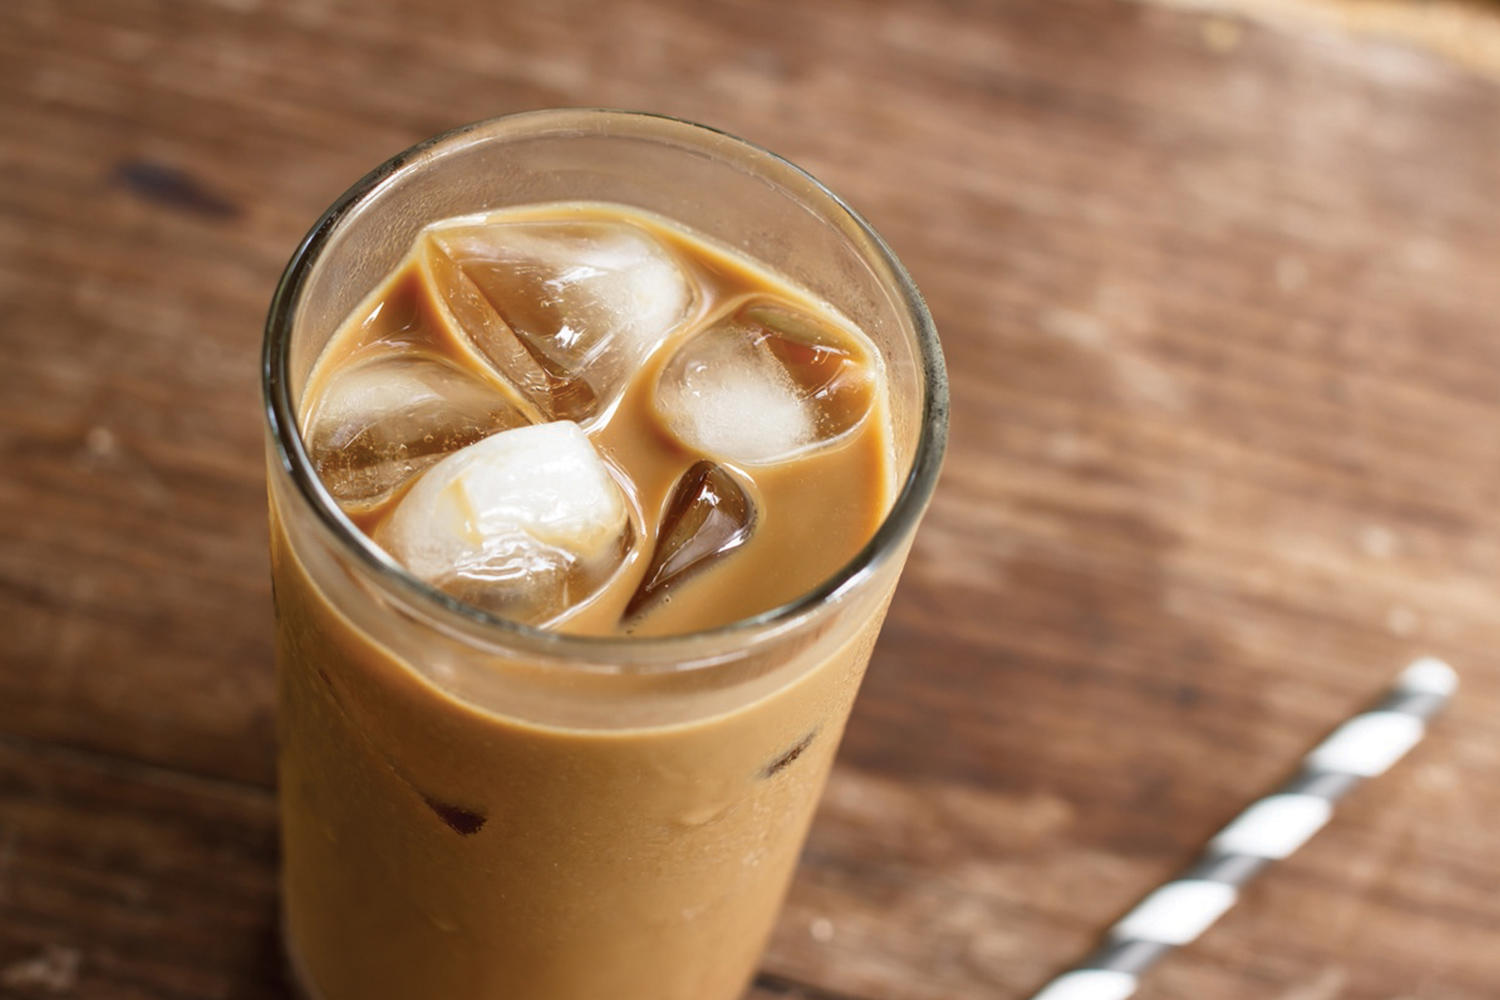 Instead of brewing coffee with hot water, chilling it, and diluting it with ice, you let the grounds sit, undisturbed